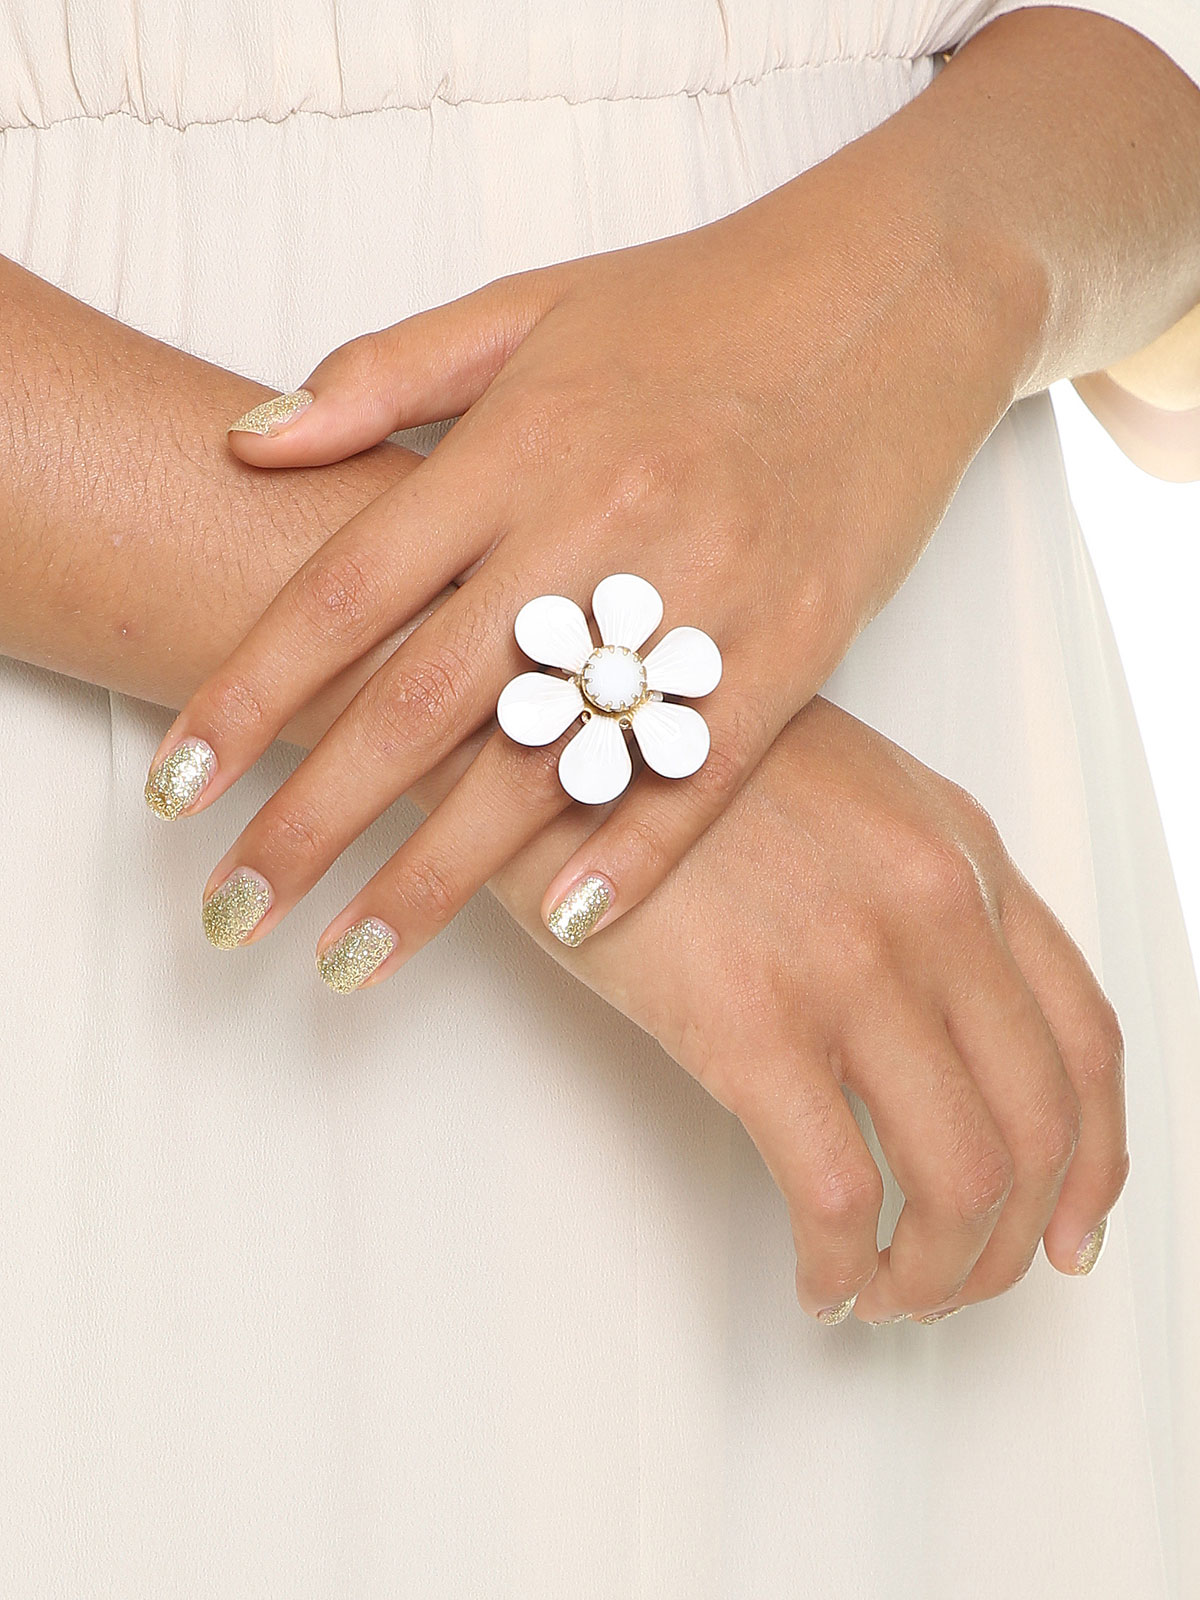 Painted flower ring